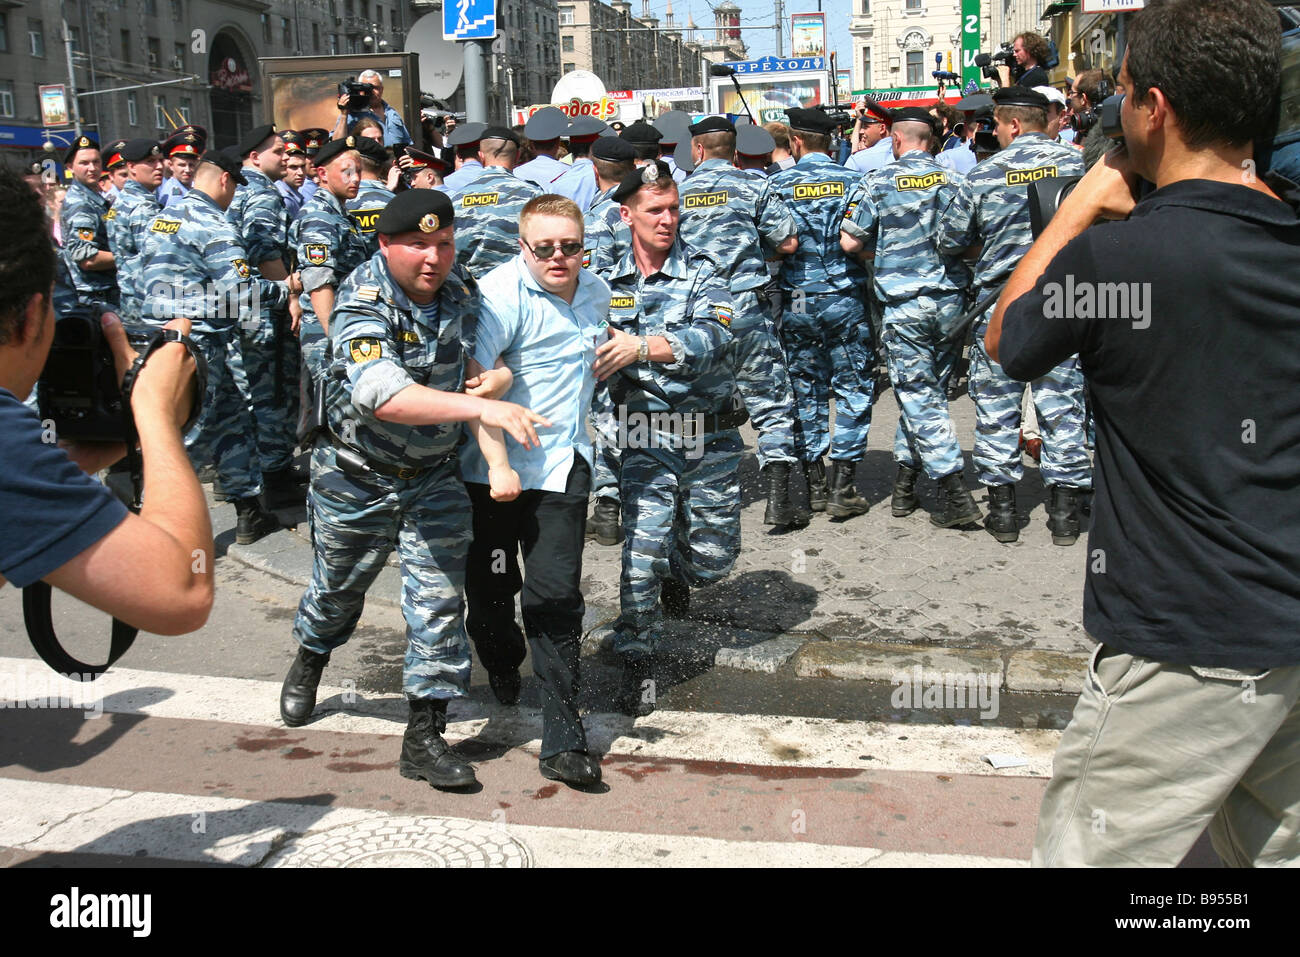 Police dispersing a demonstration of gay parade supporters in Moscow - Stock Image